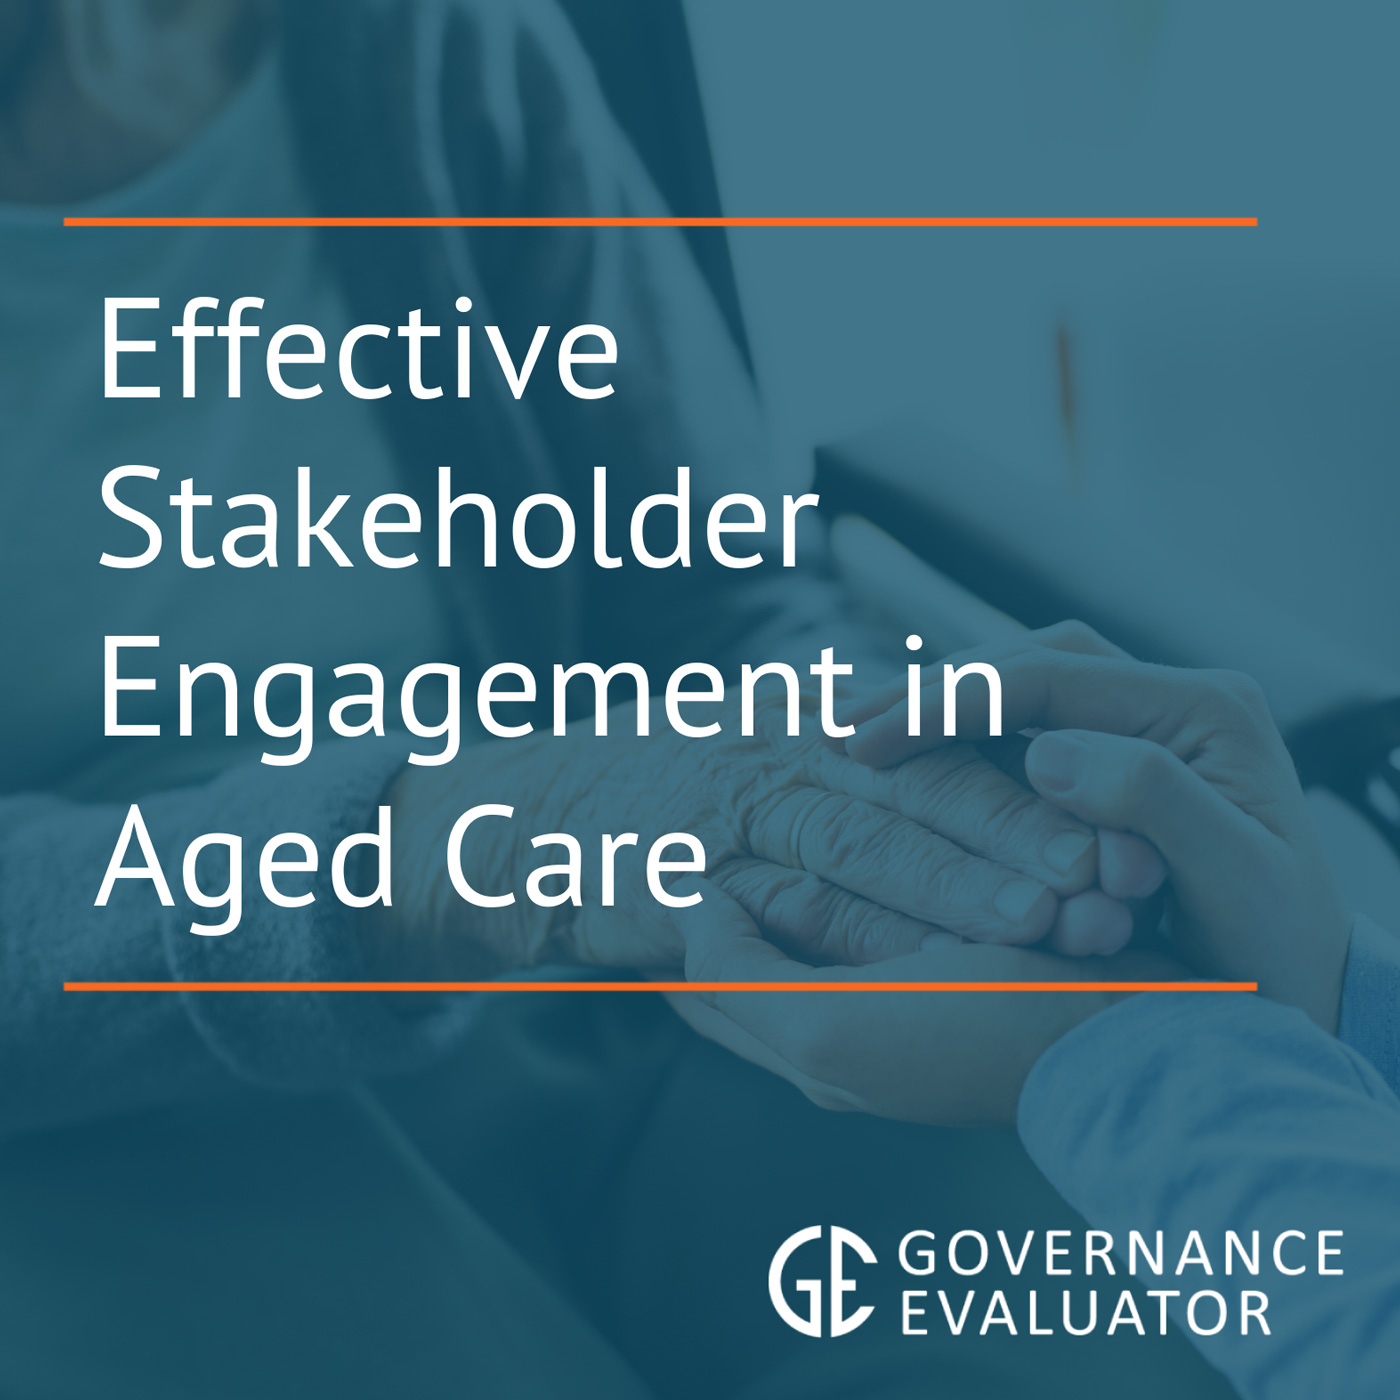 Effective stakeholder engagement in Aged care